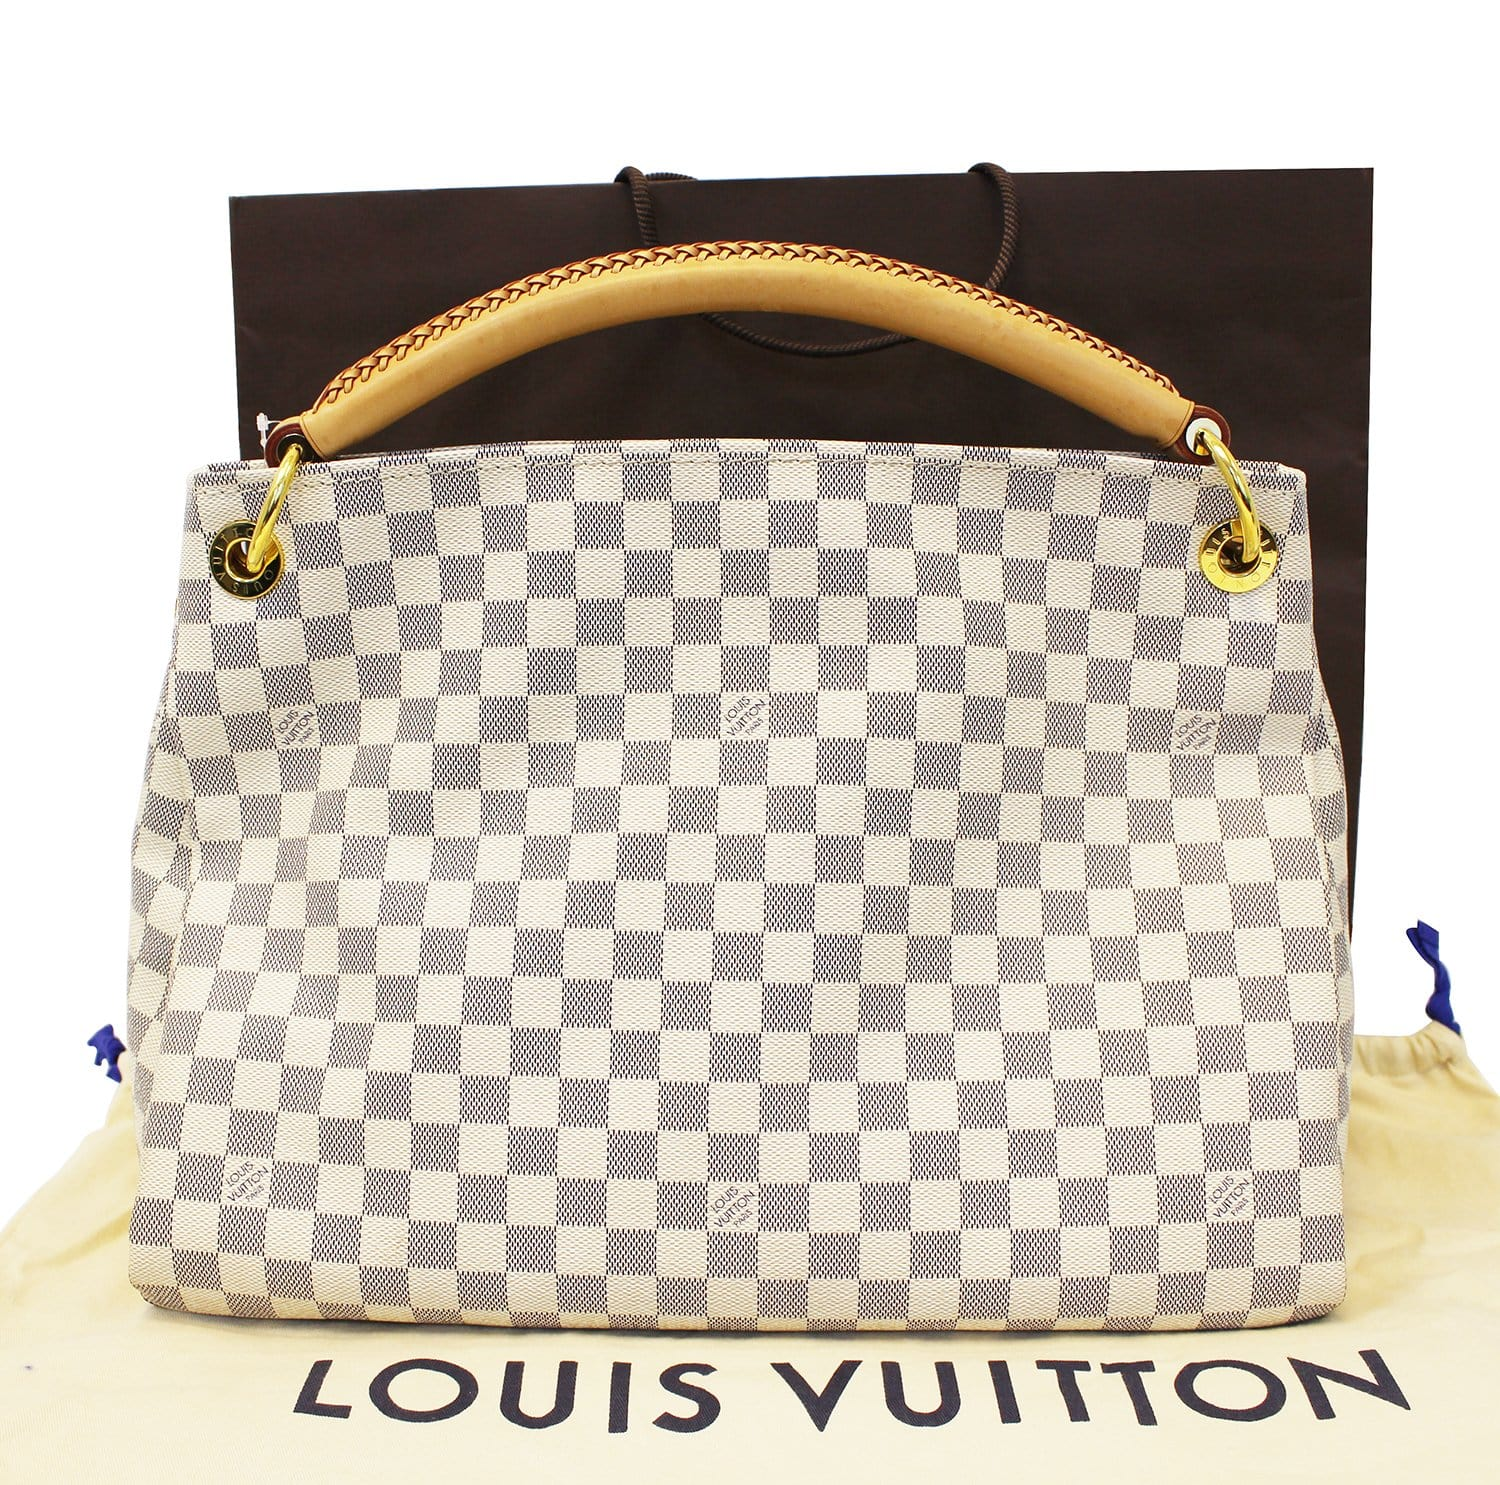 7754b0e59319 Authentic LOUIS VUITTON Artsy MM Damier Azur Shoulder Handbag TT1827